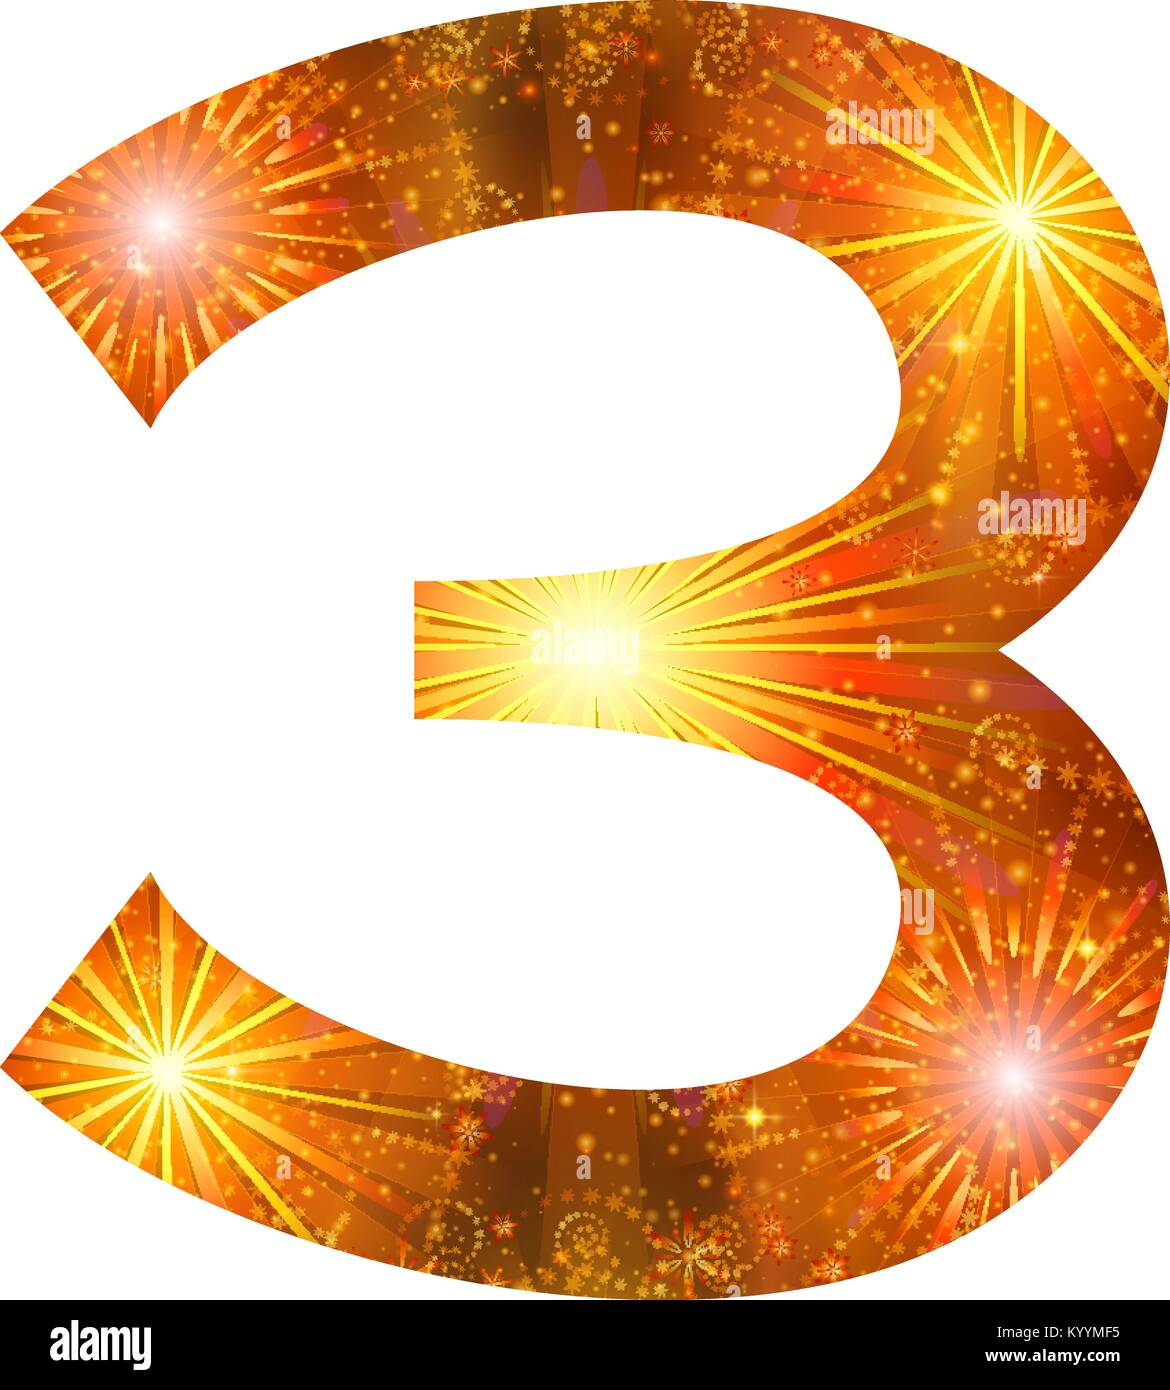 Mathematical sign number three stylized gold and orange holiday mathematical sign number three stylized gold and orange holiday firework with stars and flares element for web design eps10 contains transparenci biocorpaavc Image collections